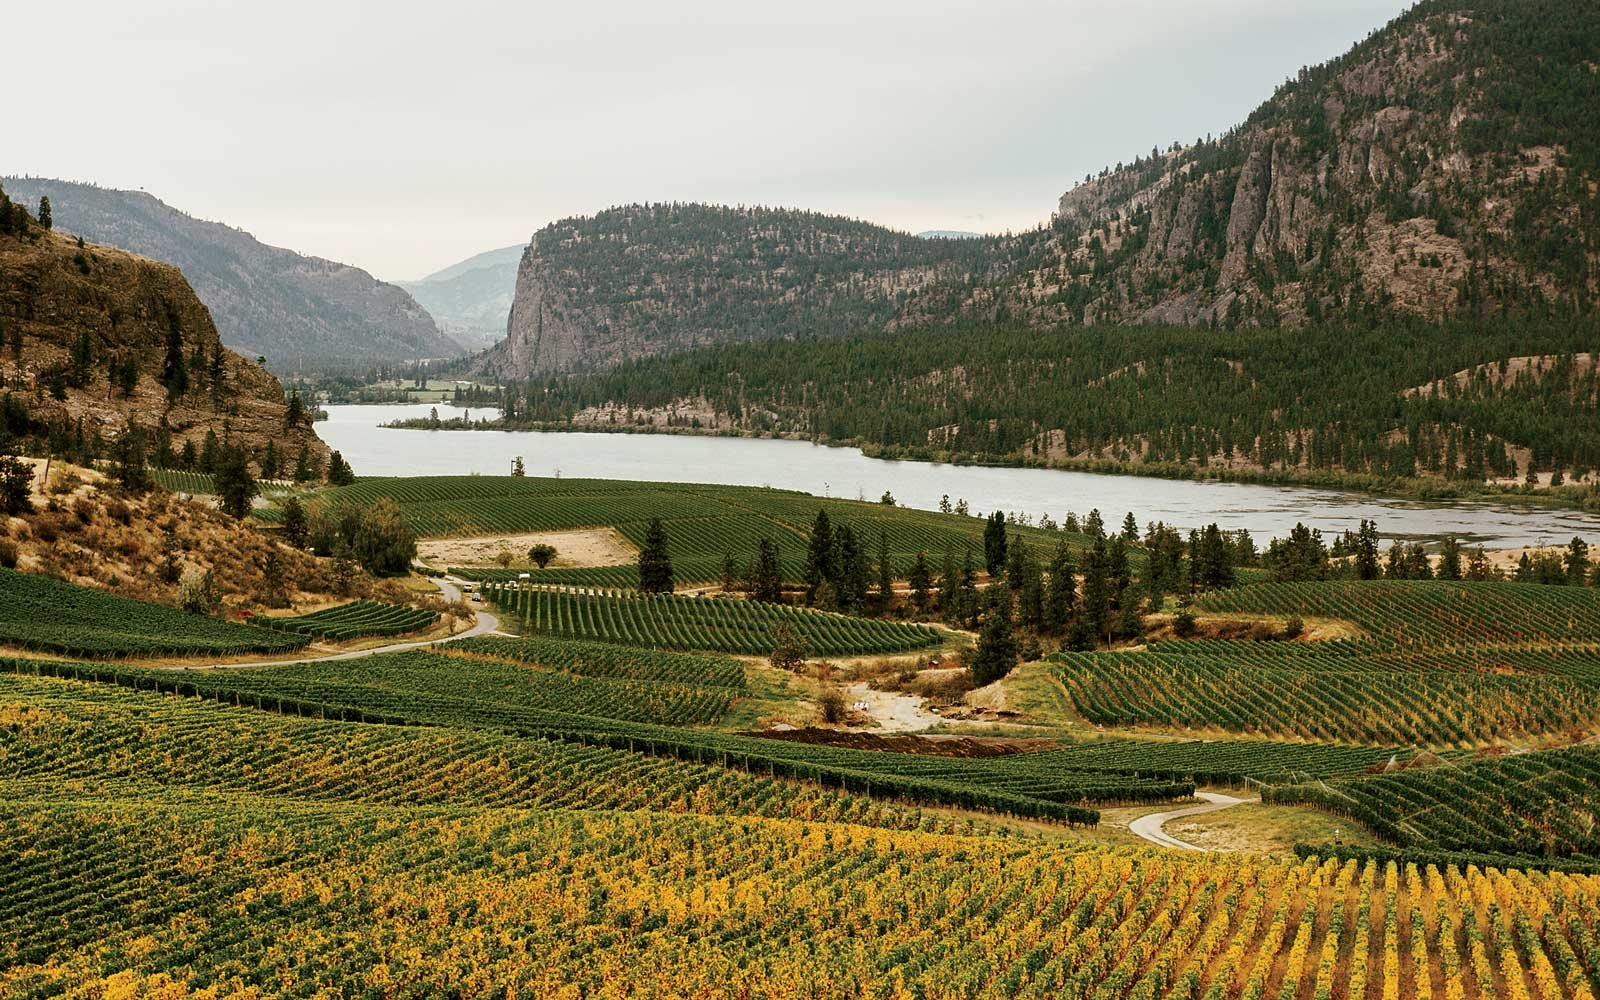 Blue Mountain Vineyard, in Okanagan Valley, British Columbia, Canada